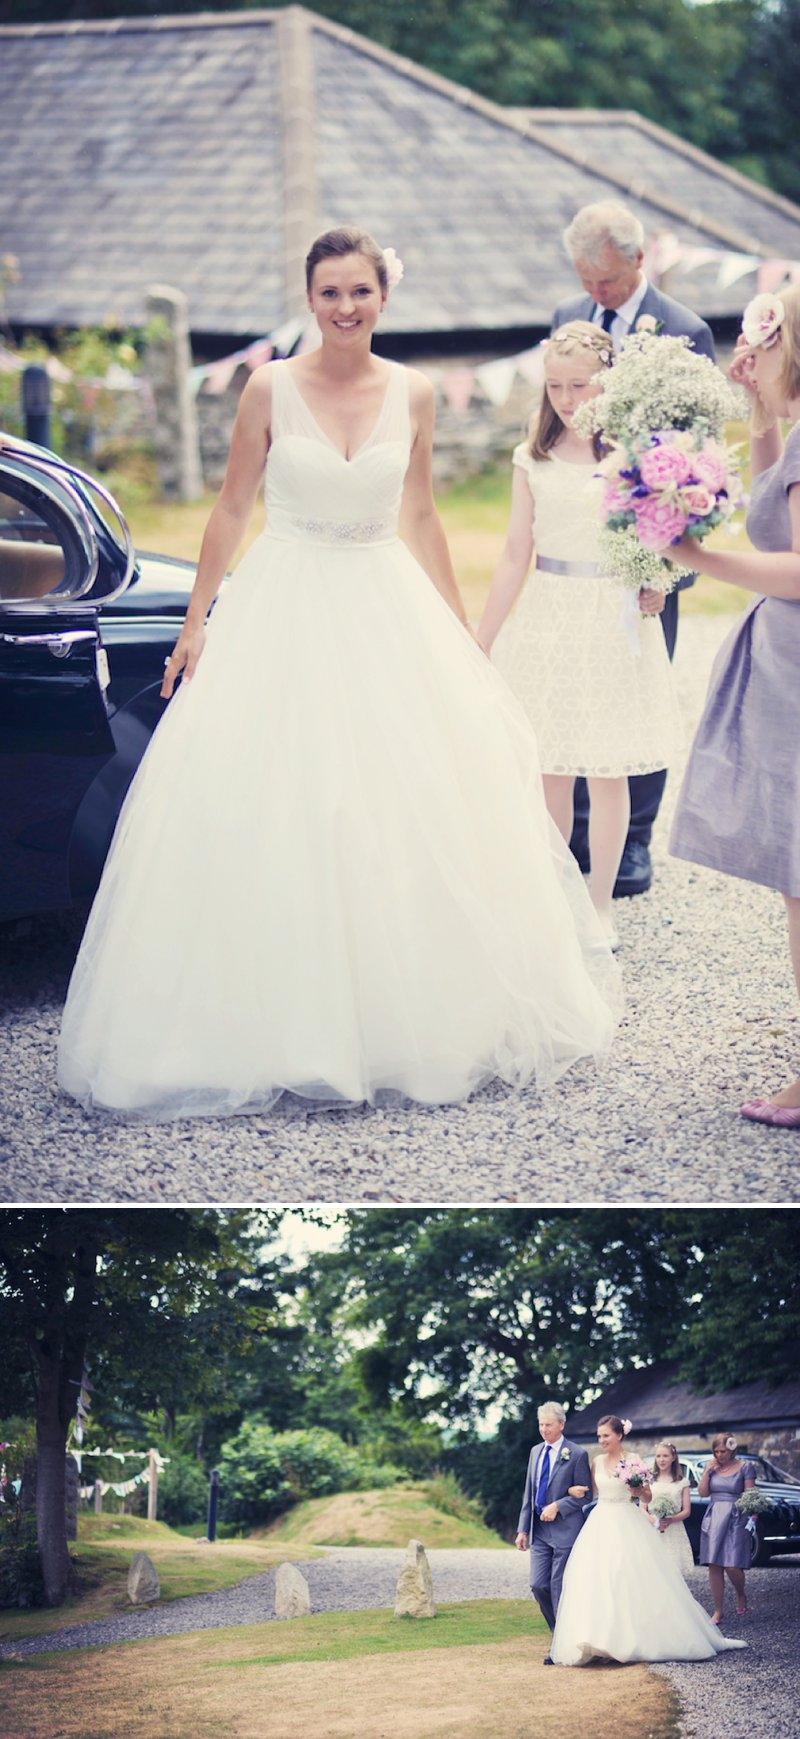 An Elegant Country Wedding At The Green Cornwall With Bride In Gown By Ellis Bridal With A Pink